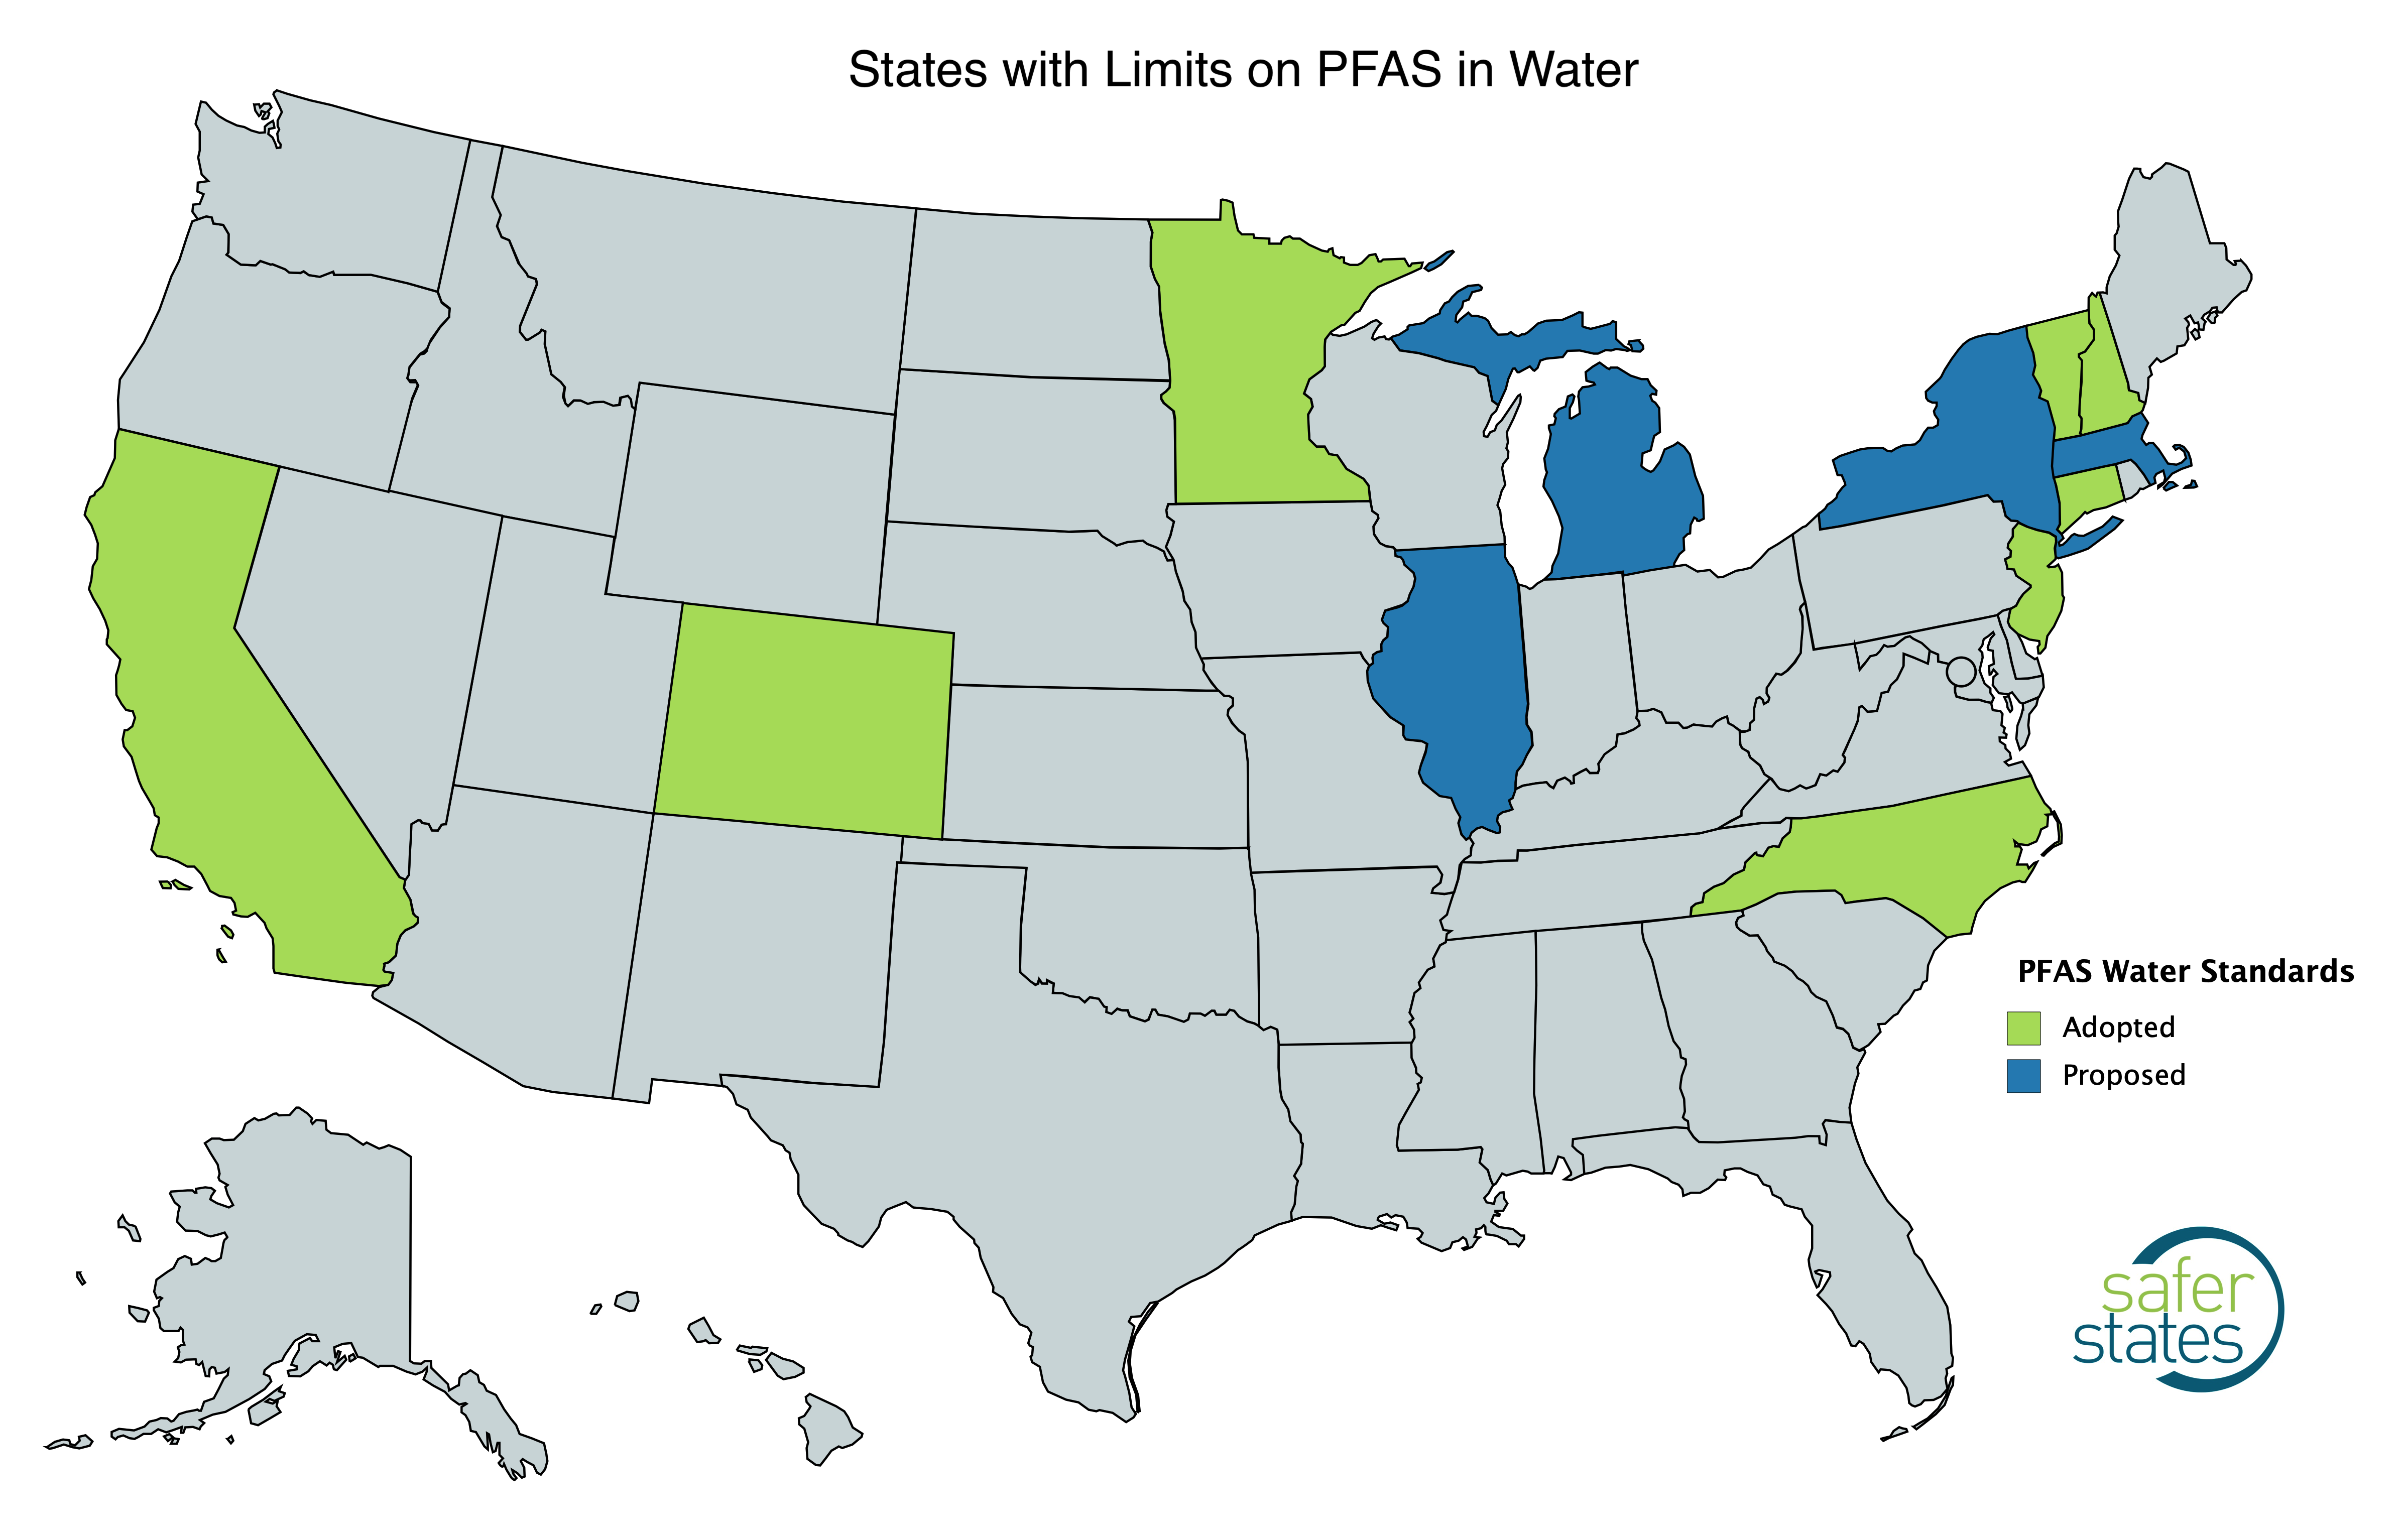 2020 PFAS Water Adopted Proposed